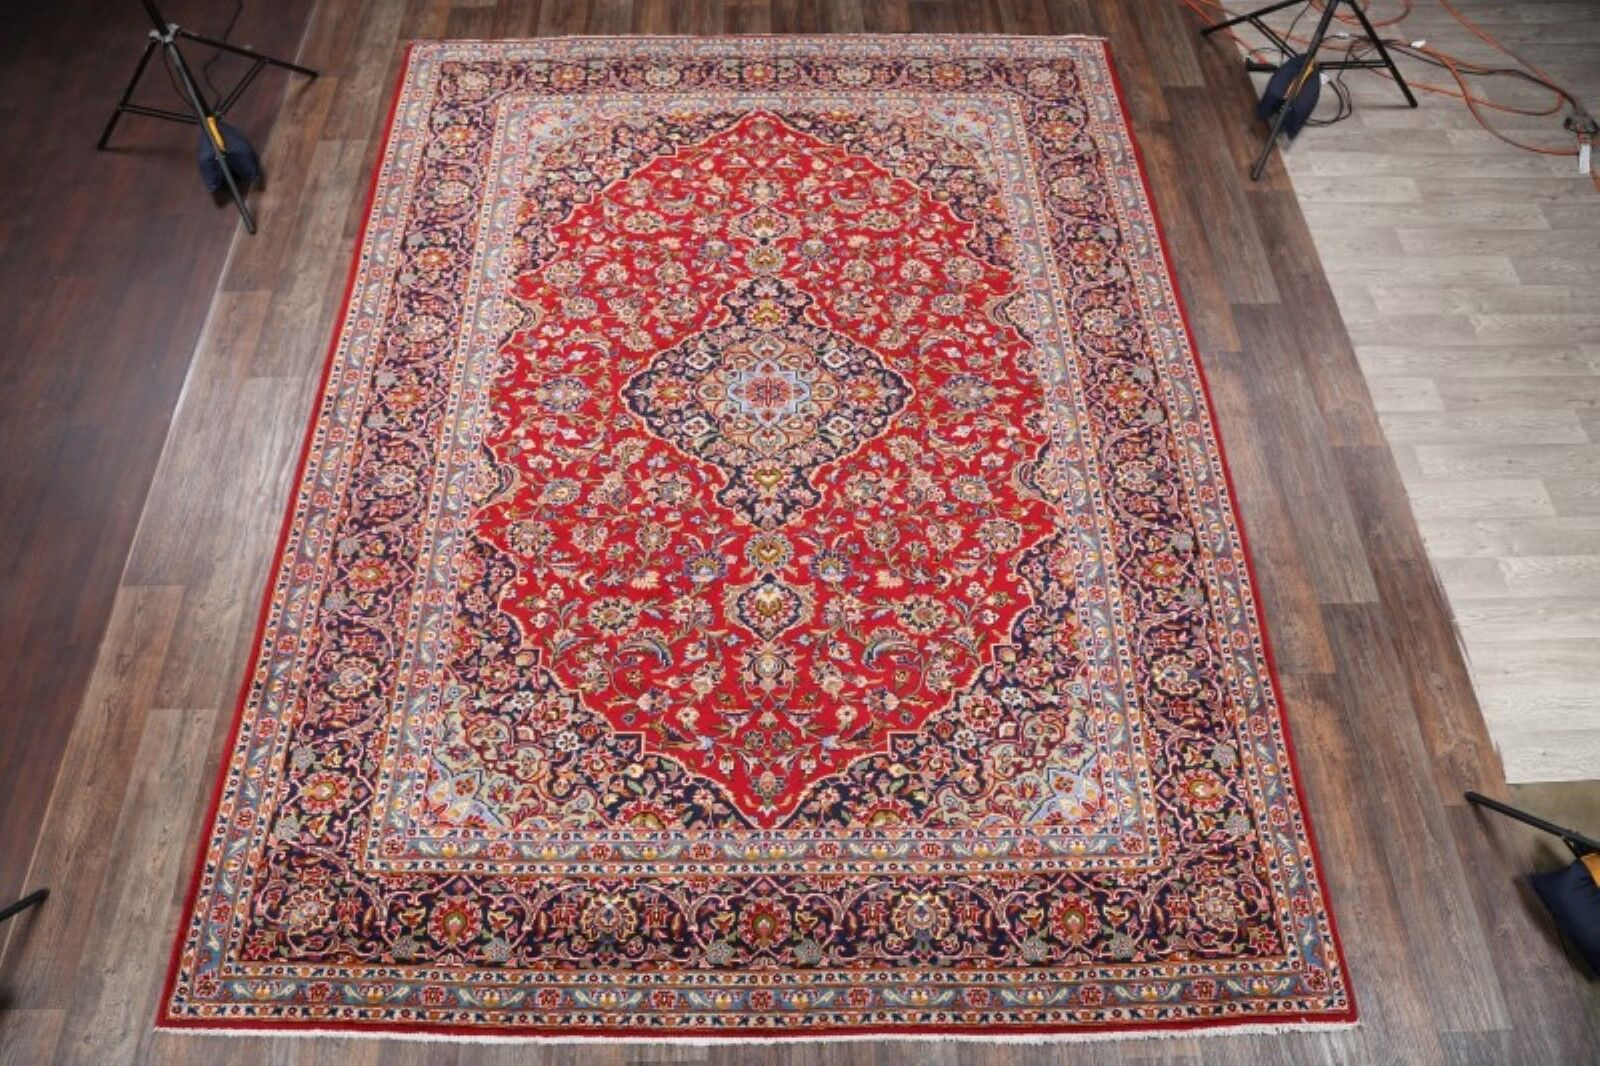 One-of-a-Kind Vintage Kashan Persian Traditional Hand-Knotted 9'9